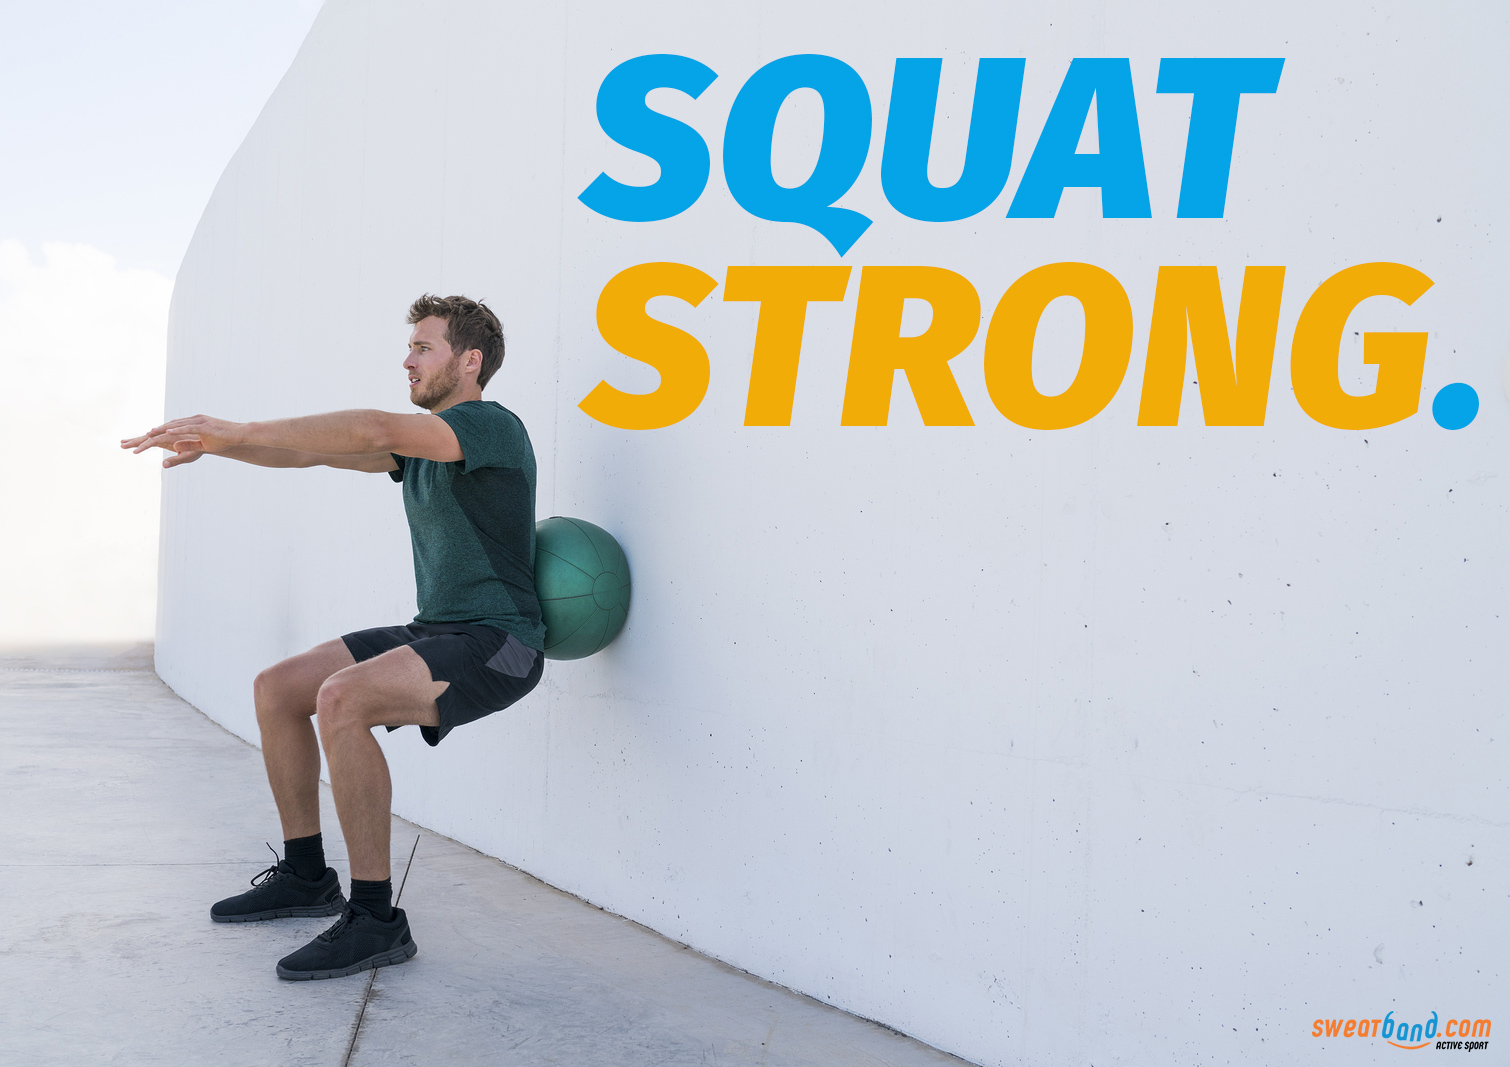 Squats for healthy bones